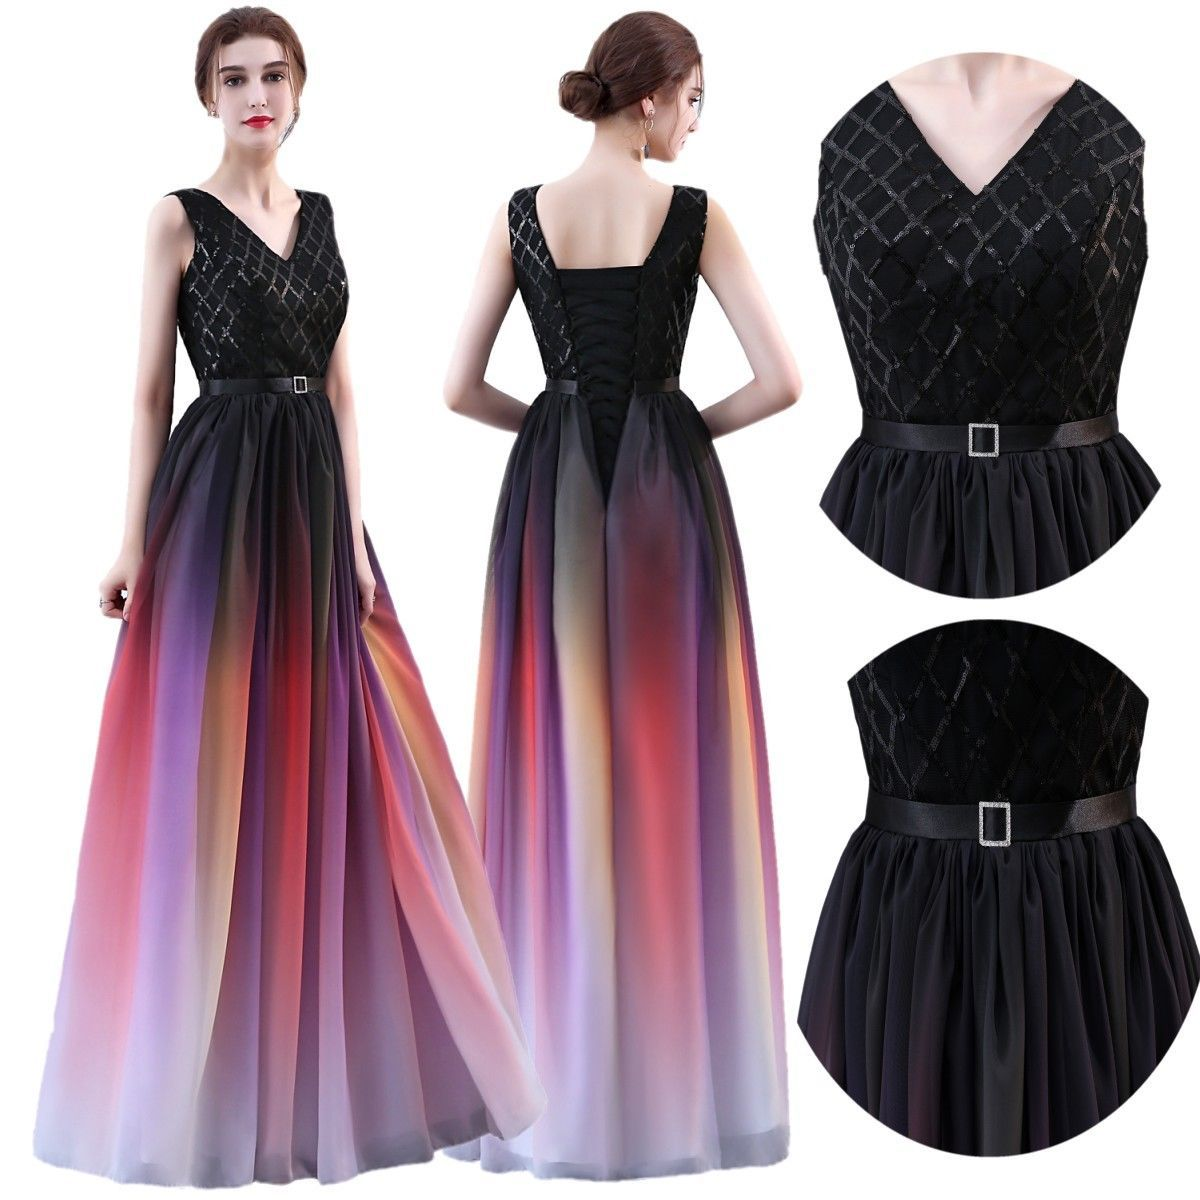 Red blue grey vneck gradient ombre chiffon formal prom dress